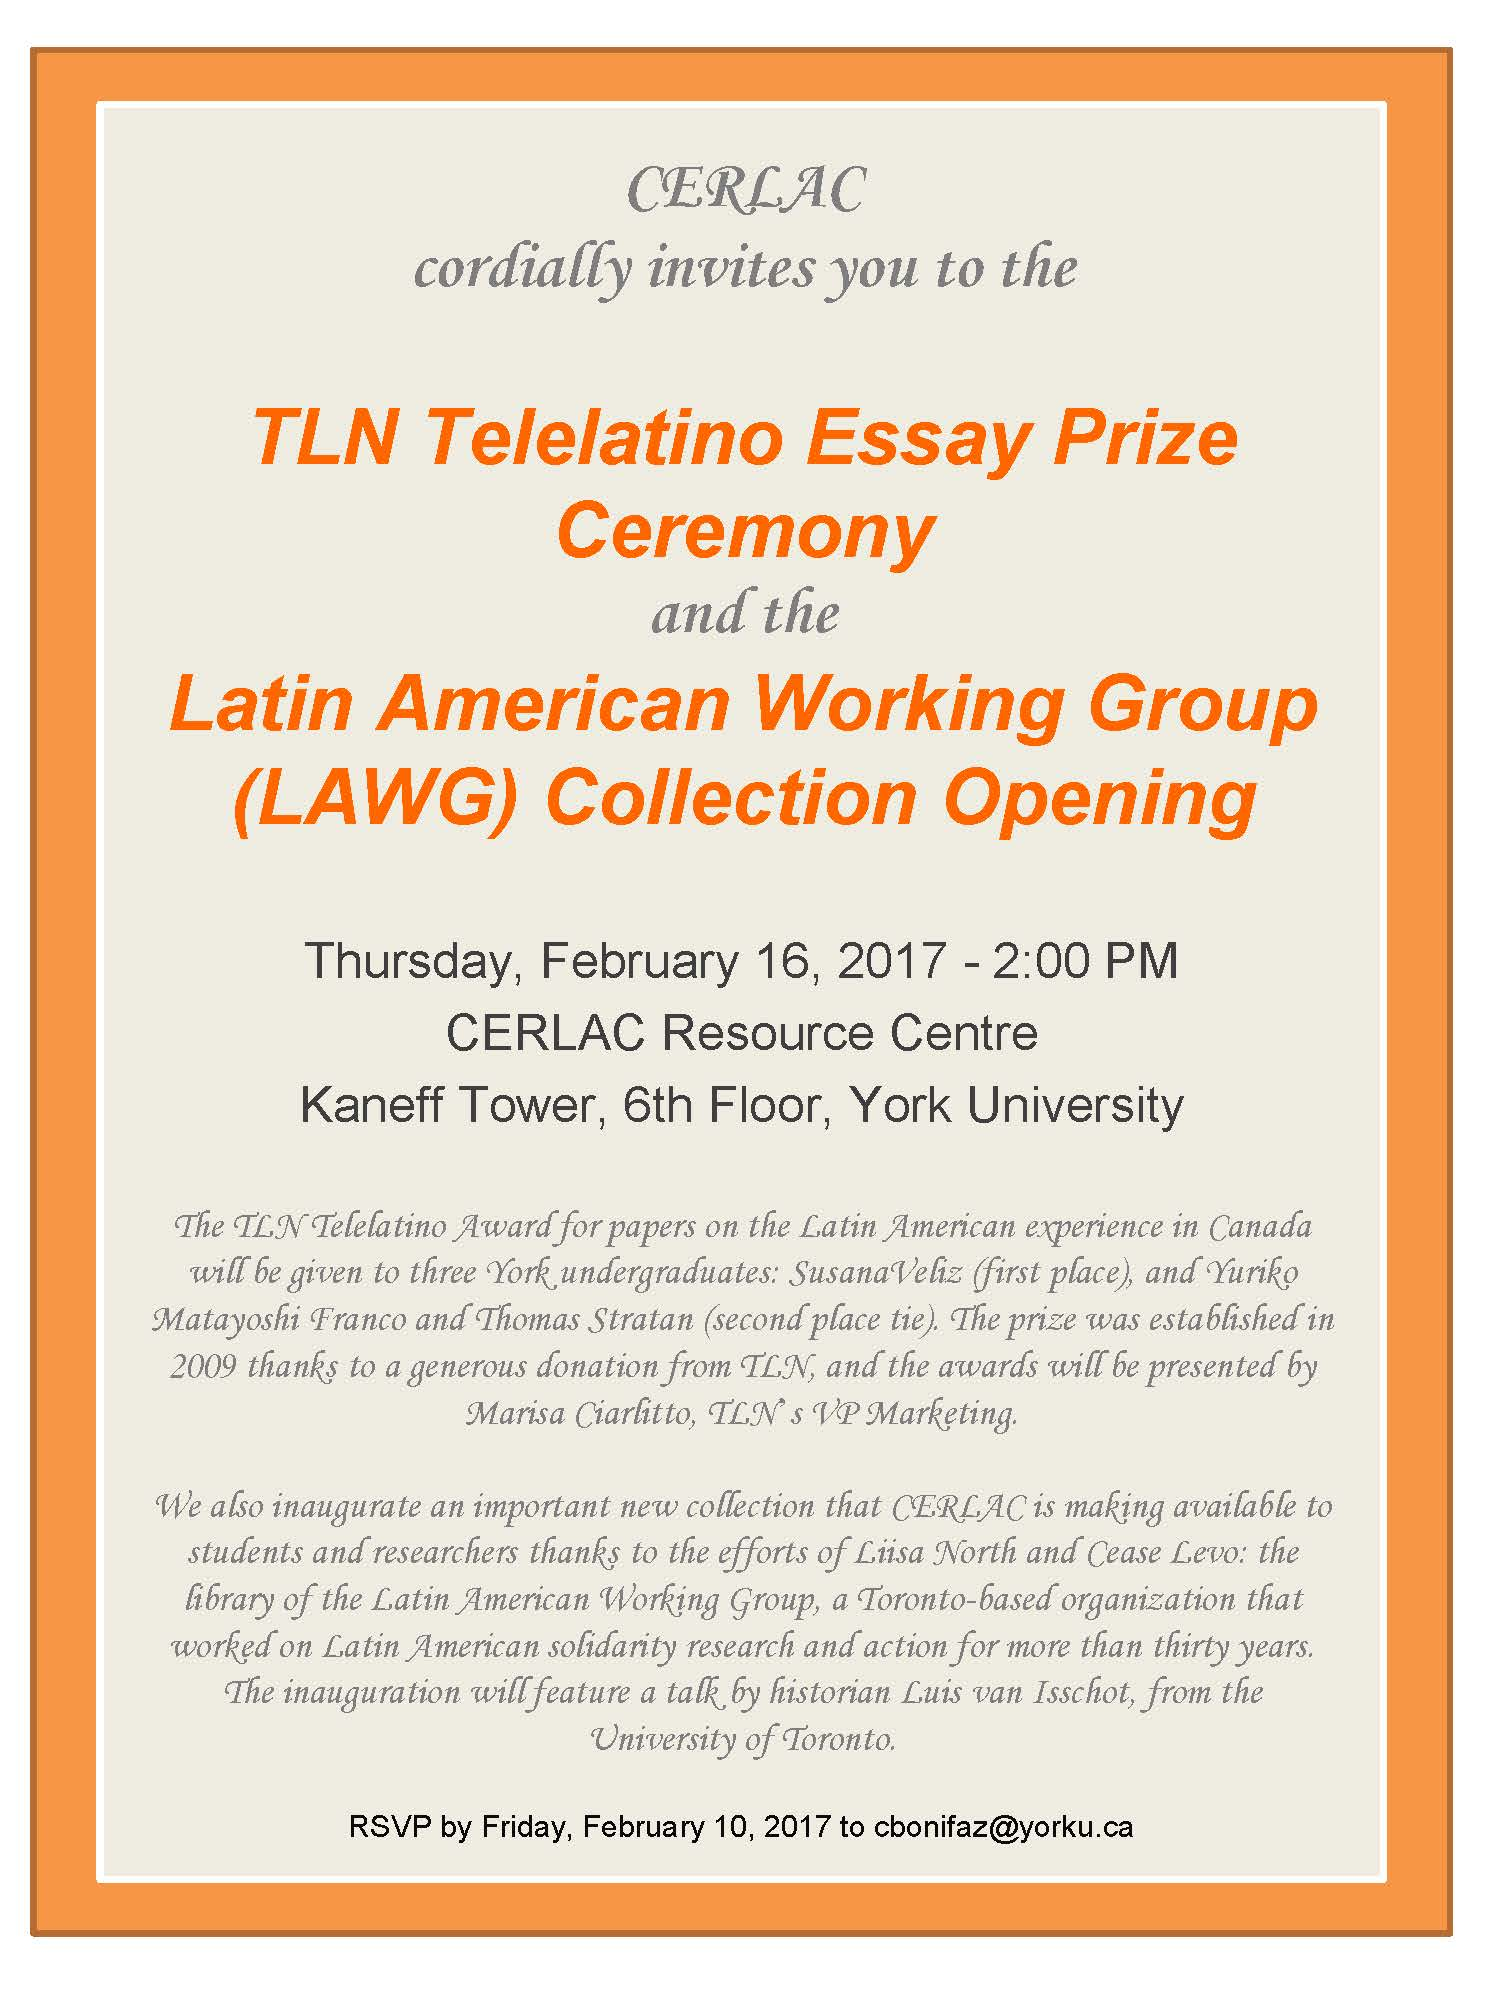 tln telelatino essay prize ceremony and latin american working tln telelatino essay prize ceremony and latin american working group lawg collection opening